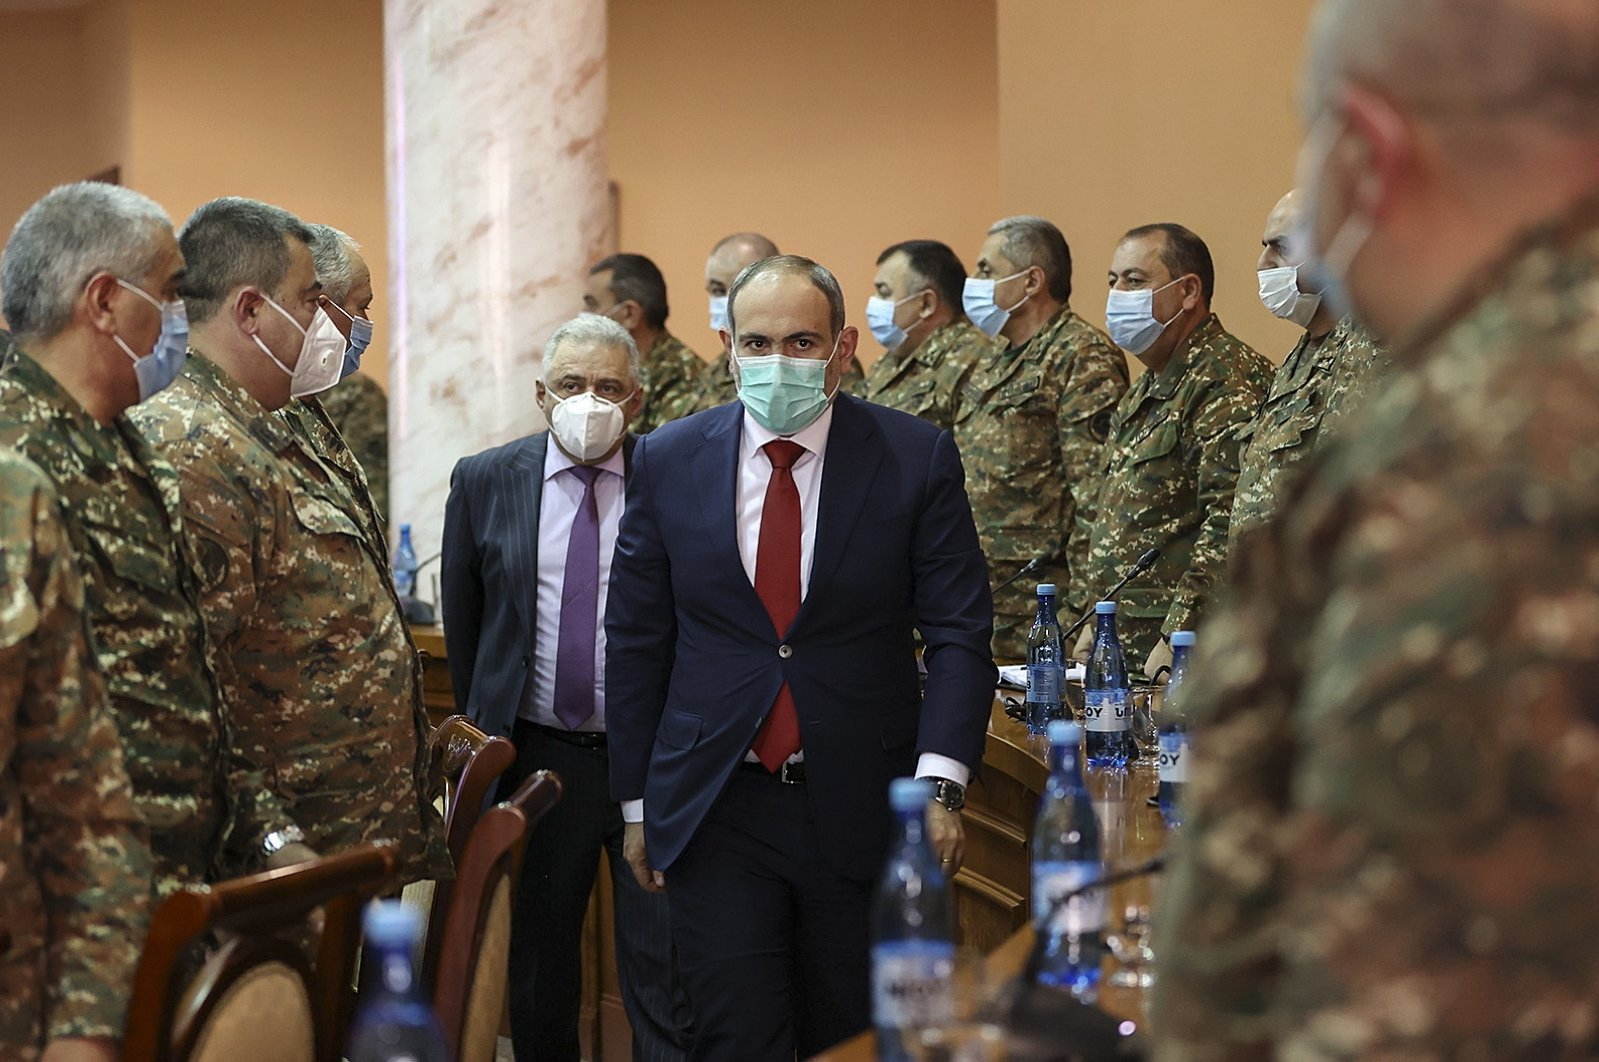 Armenian Prime Minister Nikol Pashinyan (C-R), during a meeting for consultation with the highest officers of the armed forces in Yerevan, Armenia, March 10, 2021. (EPA Photo)